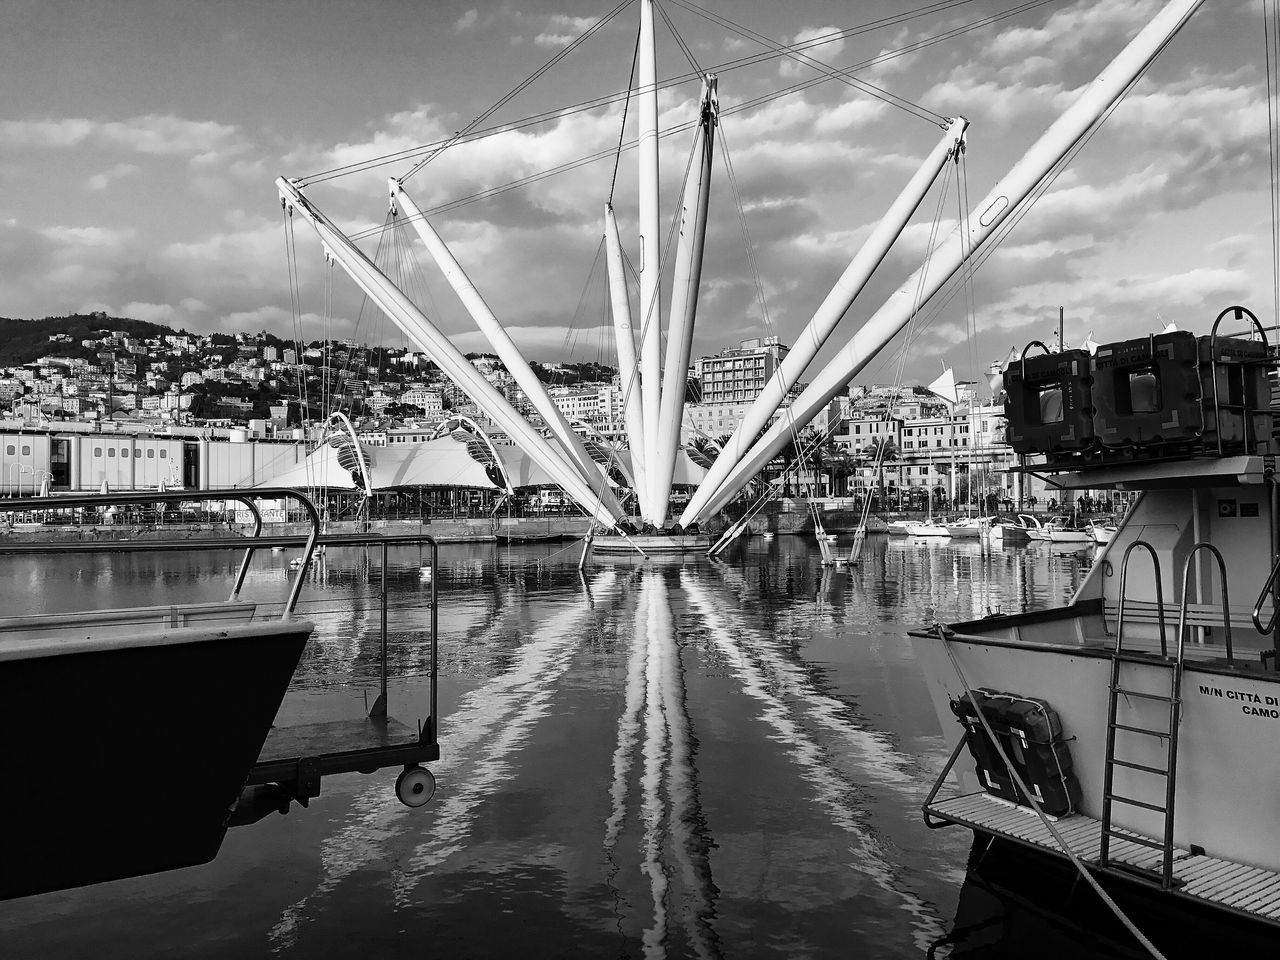 [Porto Antico] Genova ,2017® Reflection Water Sky Cloud - Sky Nautical Vessel Waterfront Building Exterior No People Black And White Street Photography Italy Genova Black&white Streetphoto_bw Bnw Blancoynegro Popular Photos Black And White Photography Instagood Eye4photography  Blackandwhite Photography Monochrome Instapic Bnw_collection Mode Of Transport